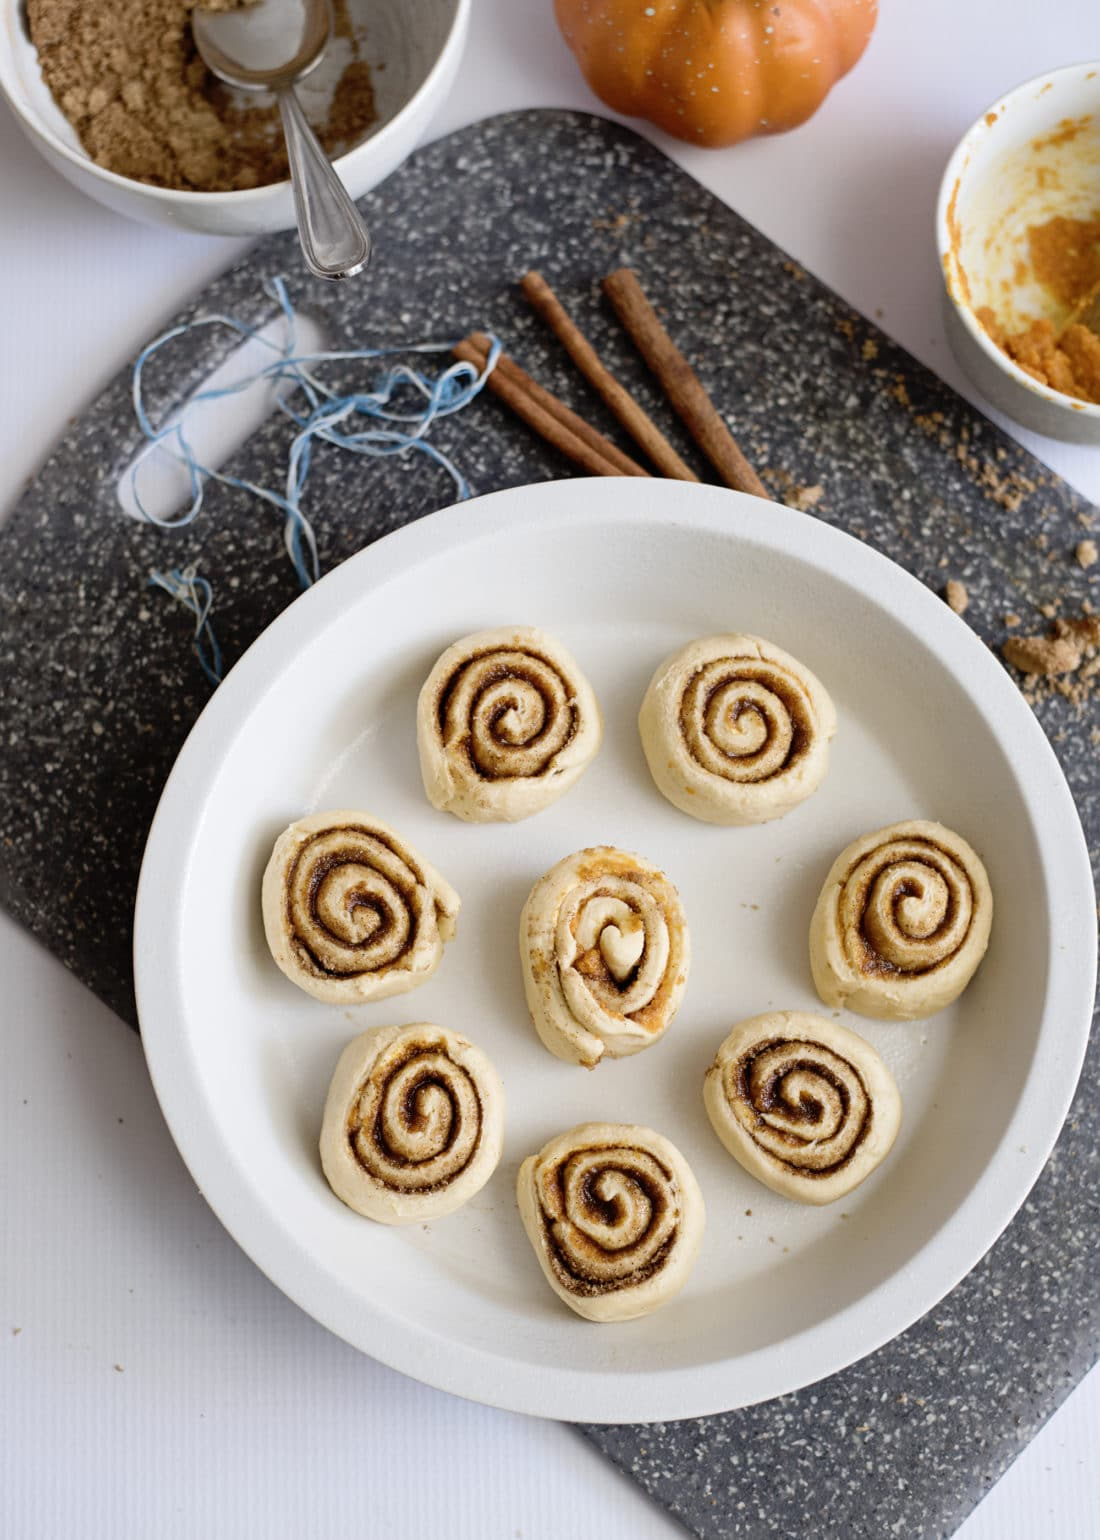 Pumpkin Spice Cinnamon Rolls In Pan.Fill your home with the delicious smell of these easy to make Pumpkin Spice Cinnamon Rolls.